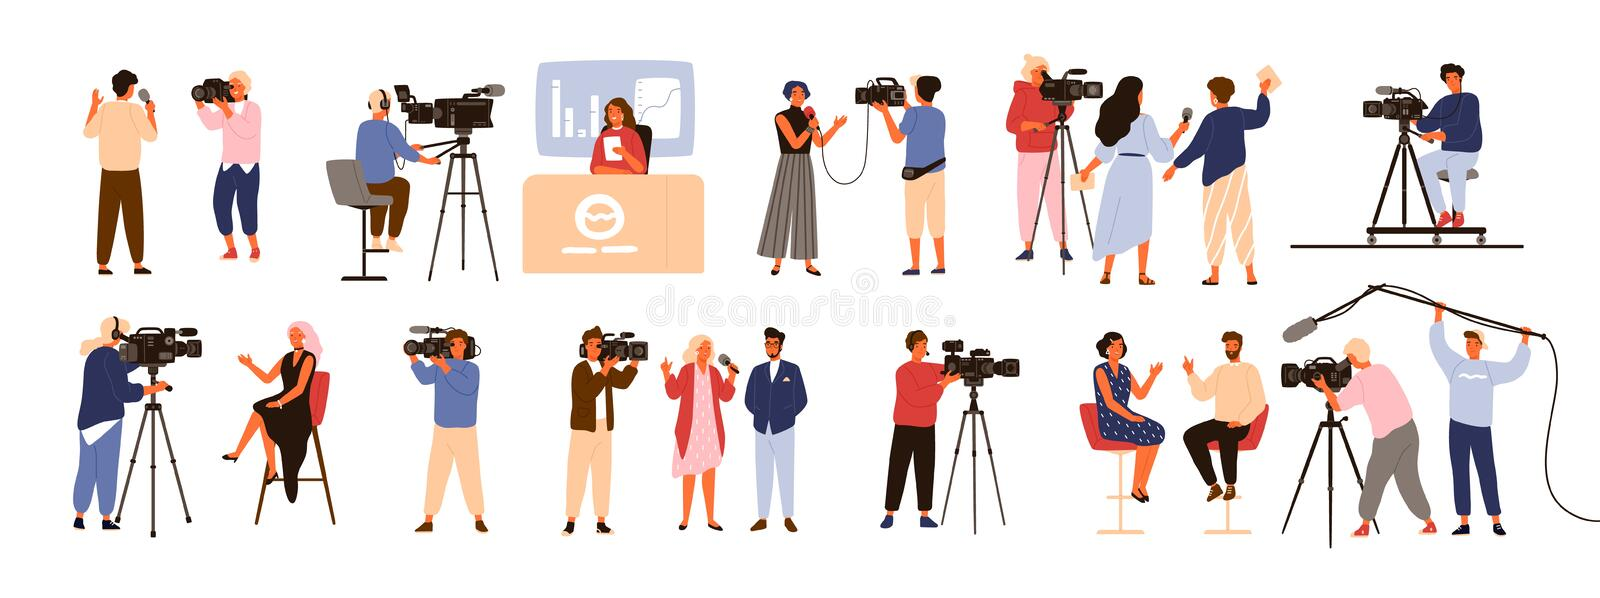 Collection of journalists, talk show hosts interviewing people, news presenters and cameramen or videographers with vector illustration